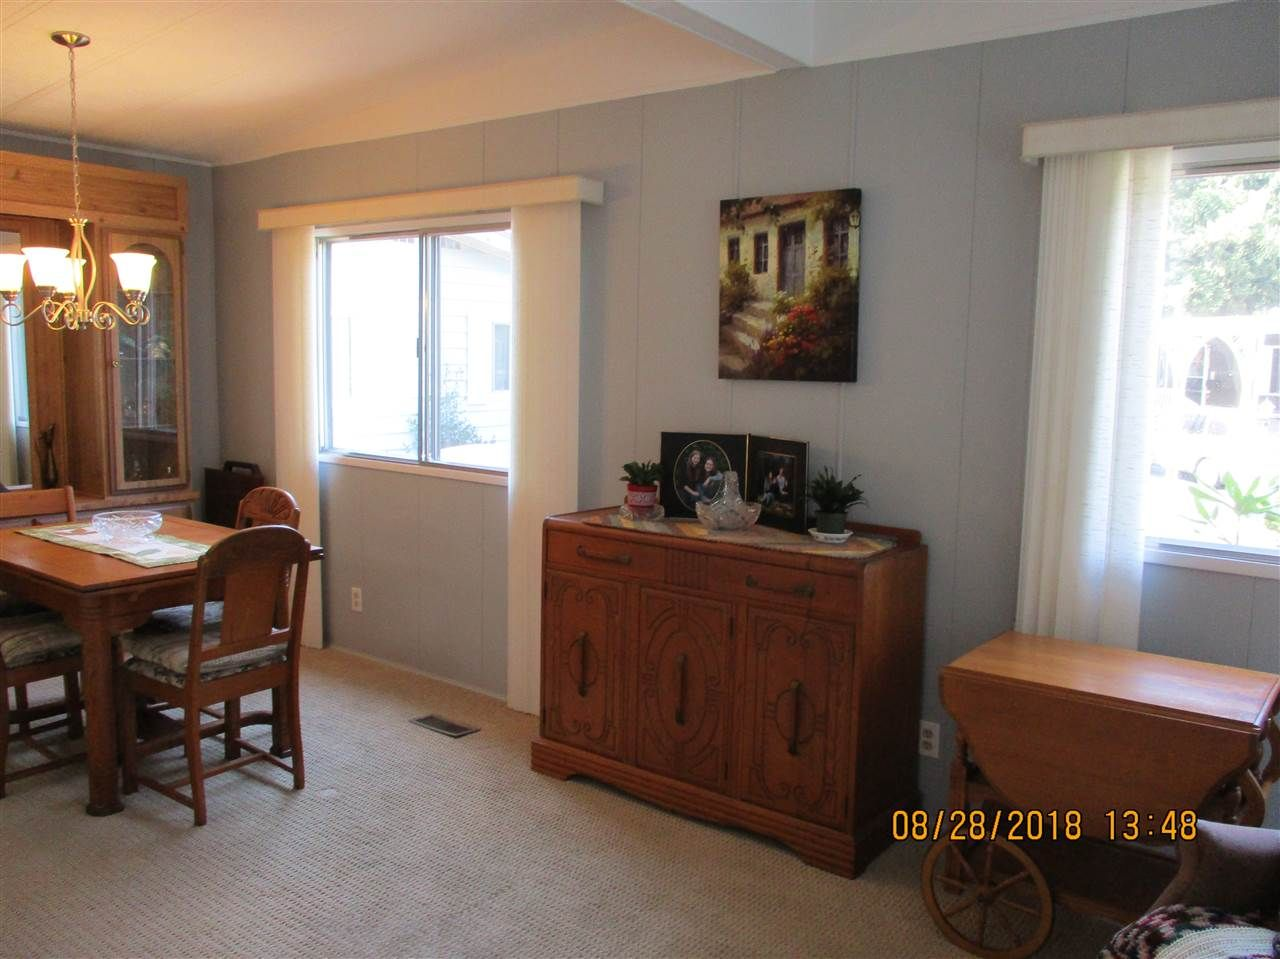 """Photo 4: Photos: 57 2305 200 Street in Langley: Brookswood Langley Manufactured Home for sale in """"CEDAR LANE"""" : MLS®# R2357125"""